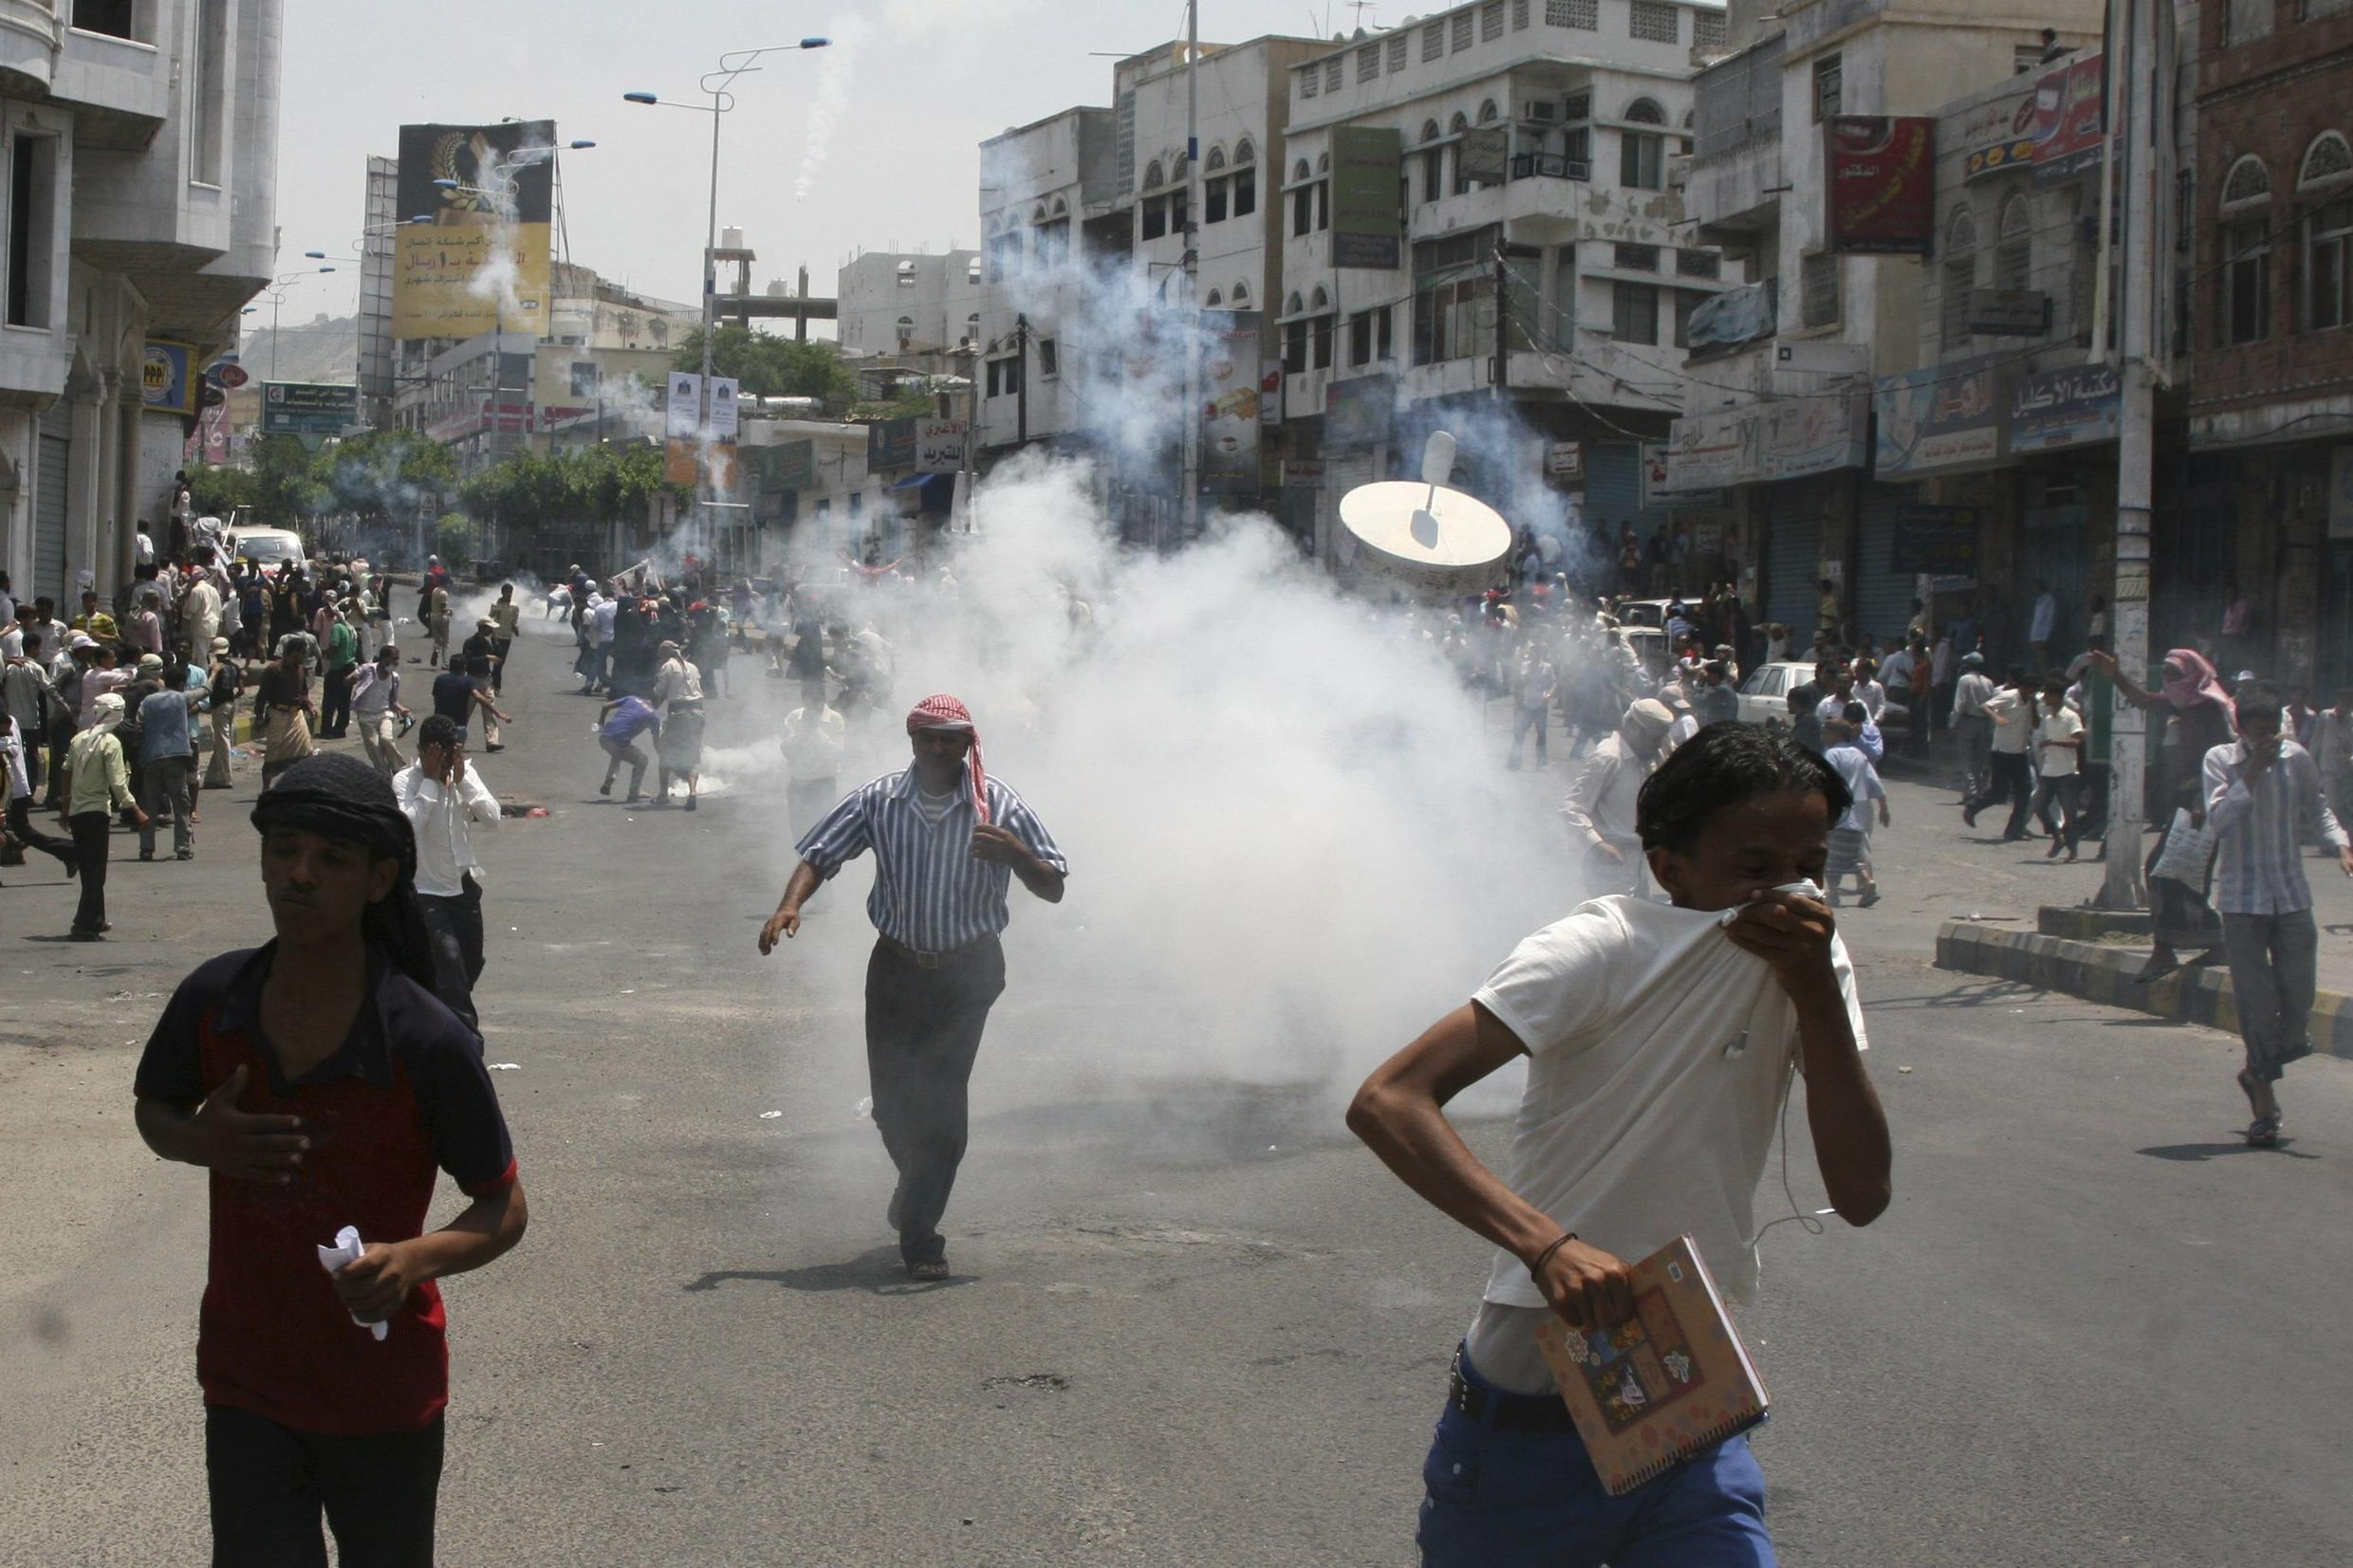 Anti-government protesters demanding the ouster of Yemen's President Ali Abdullah Saleh in the Southern city of Taiz